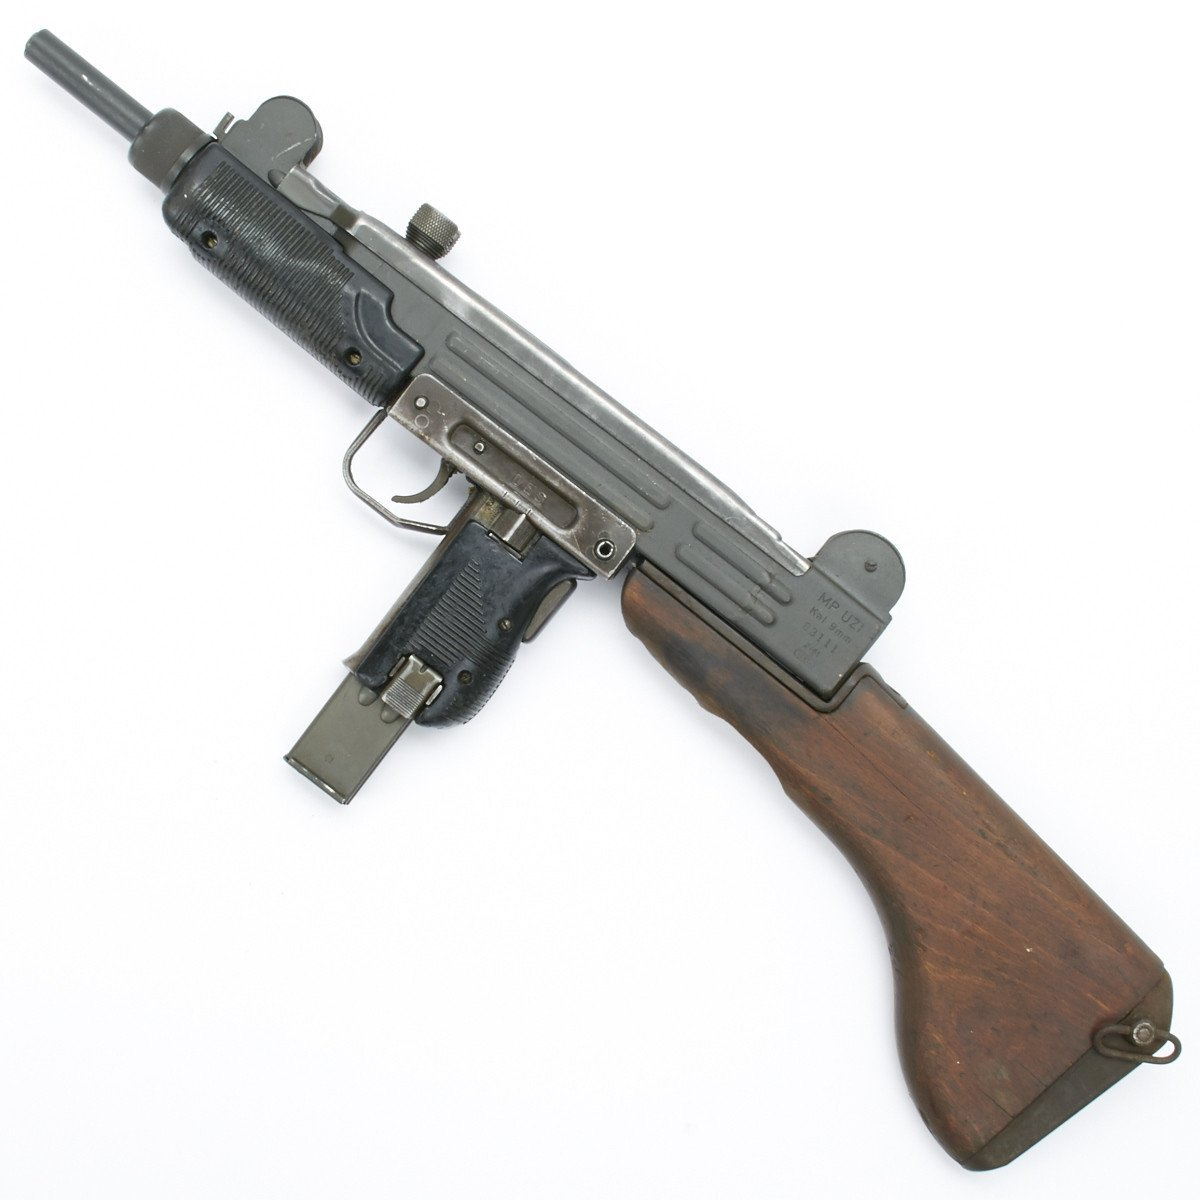 Original Israeli UZI Display Submachine Gun with Wood Stock